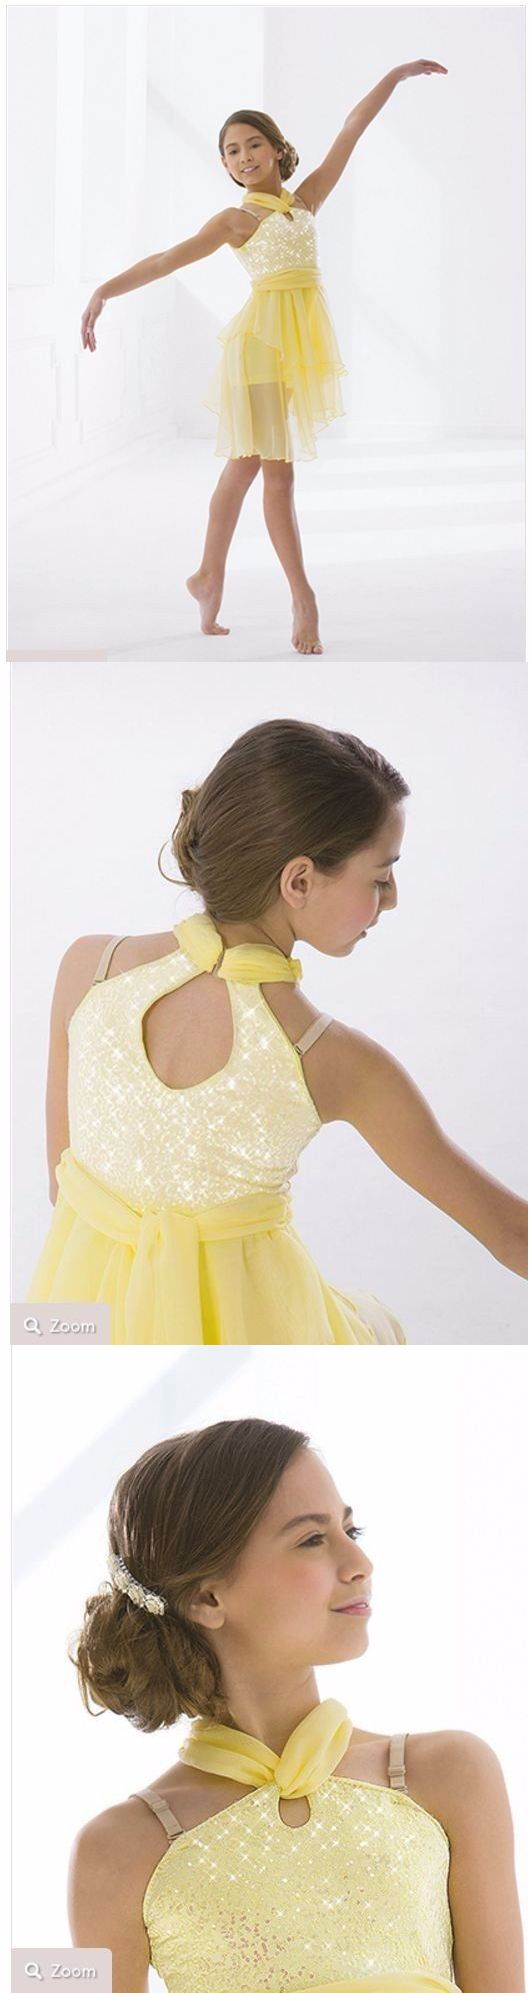 Dresses and Tutus 152352: Yellow Revolution Dance Lyrical Costume -> BUY IT NOW ONLY: $45 on eBay!